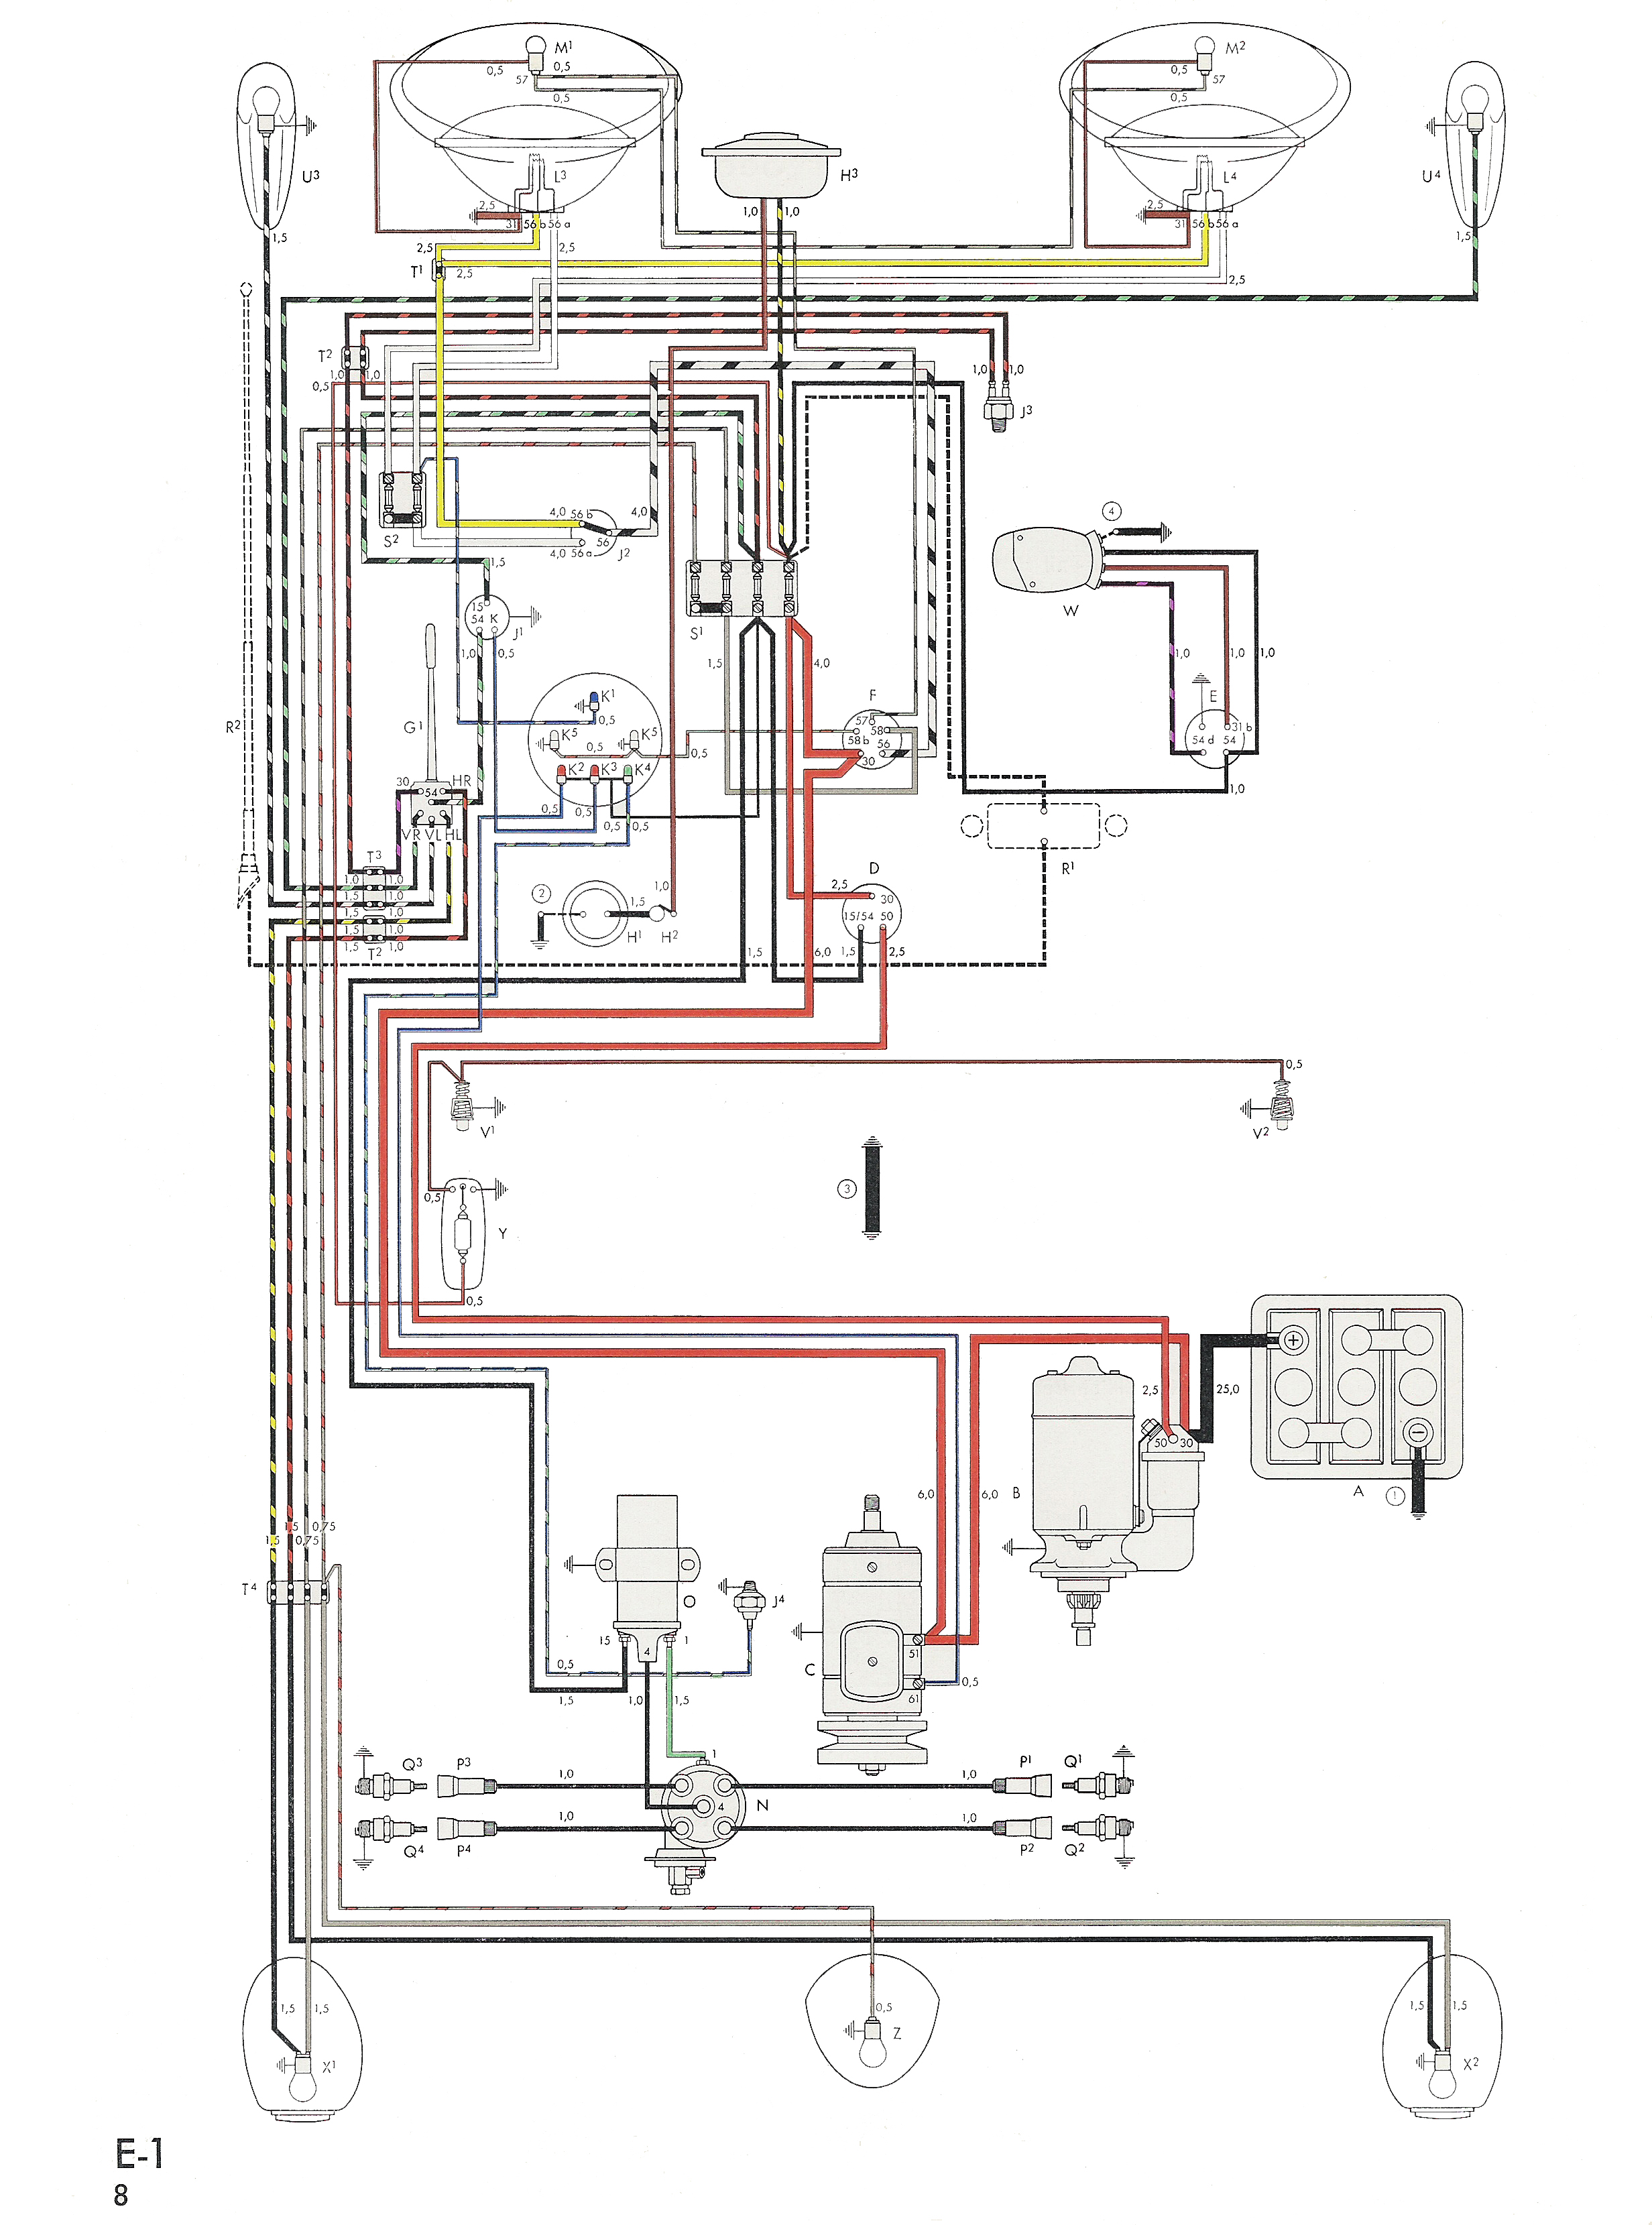 bug_58_USA_300dpi thesamba com type 1 wiring diagrams find wiring diagram for 87 ford f 150 at gsmportal.co